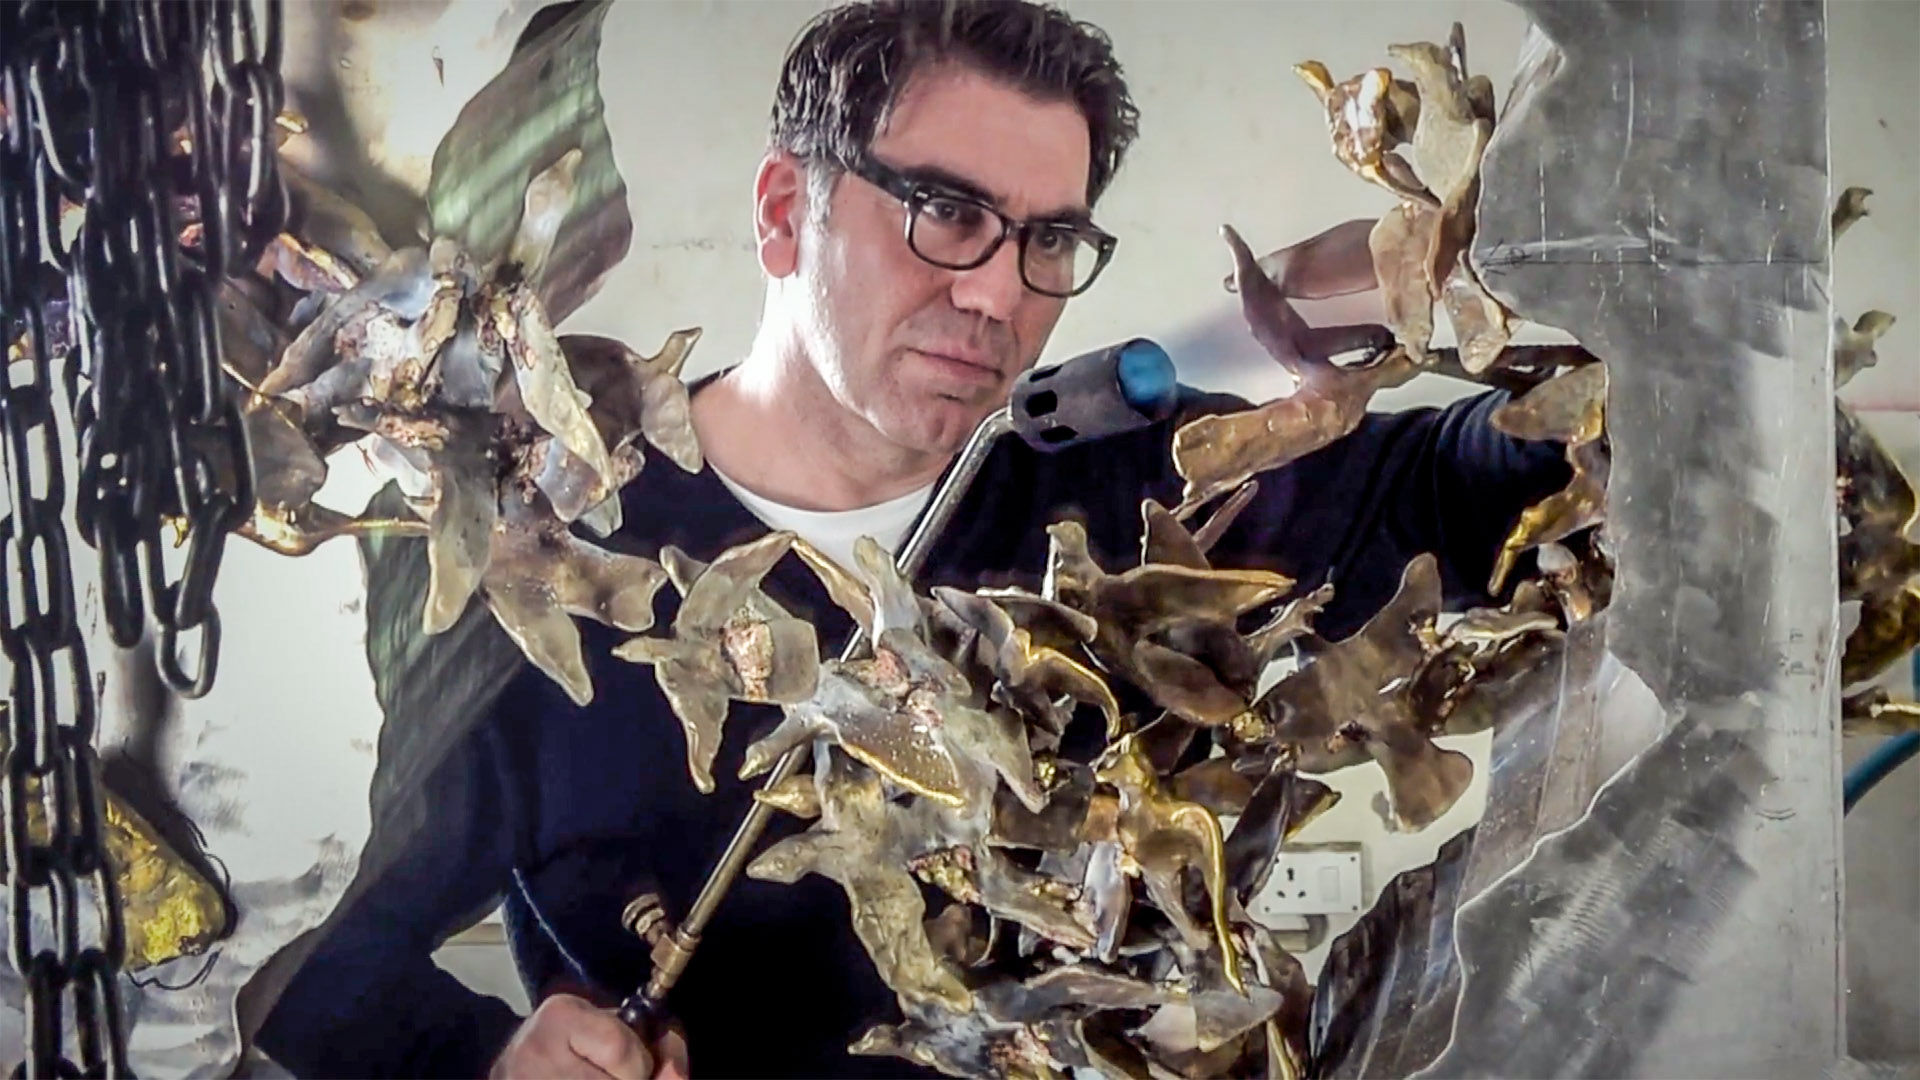 Michael Aram Wolohojian    Designer, Artist    Honoring his ancestors by creating a positive sculpture for reflecting on the present and future.